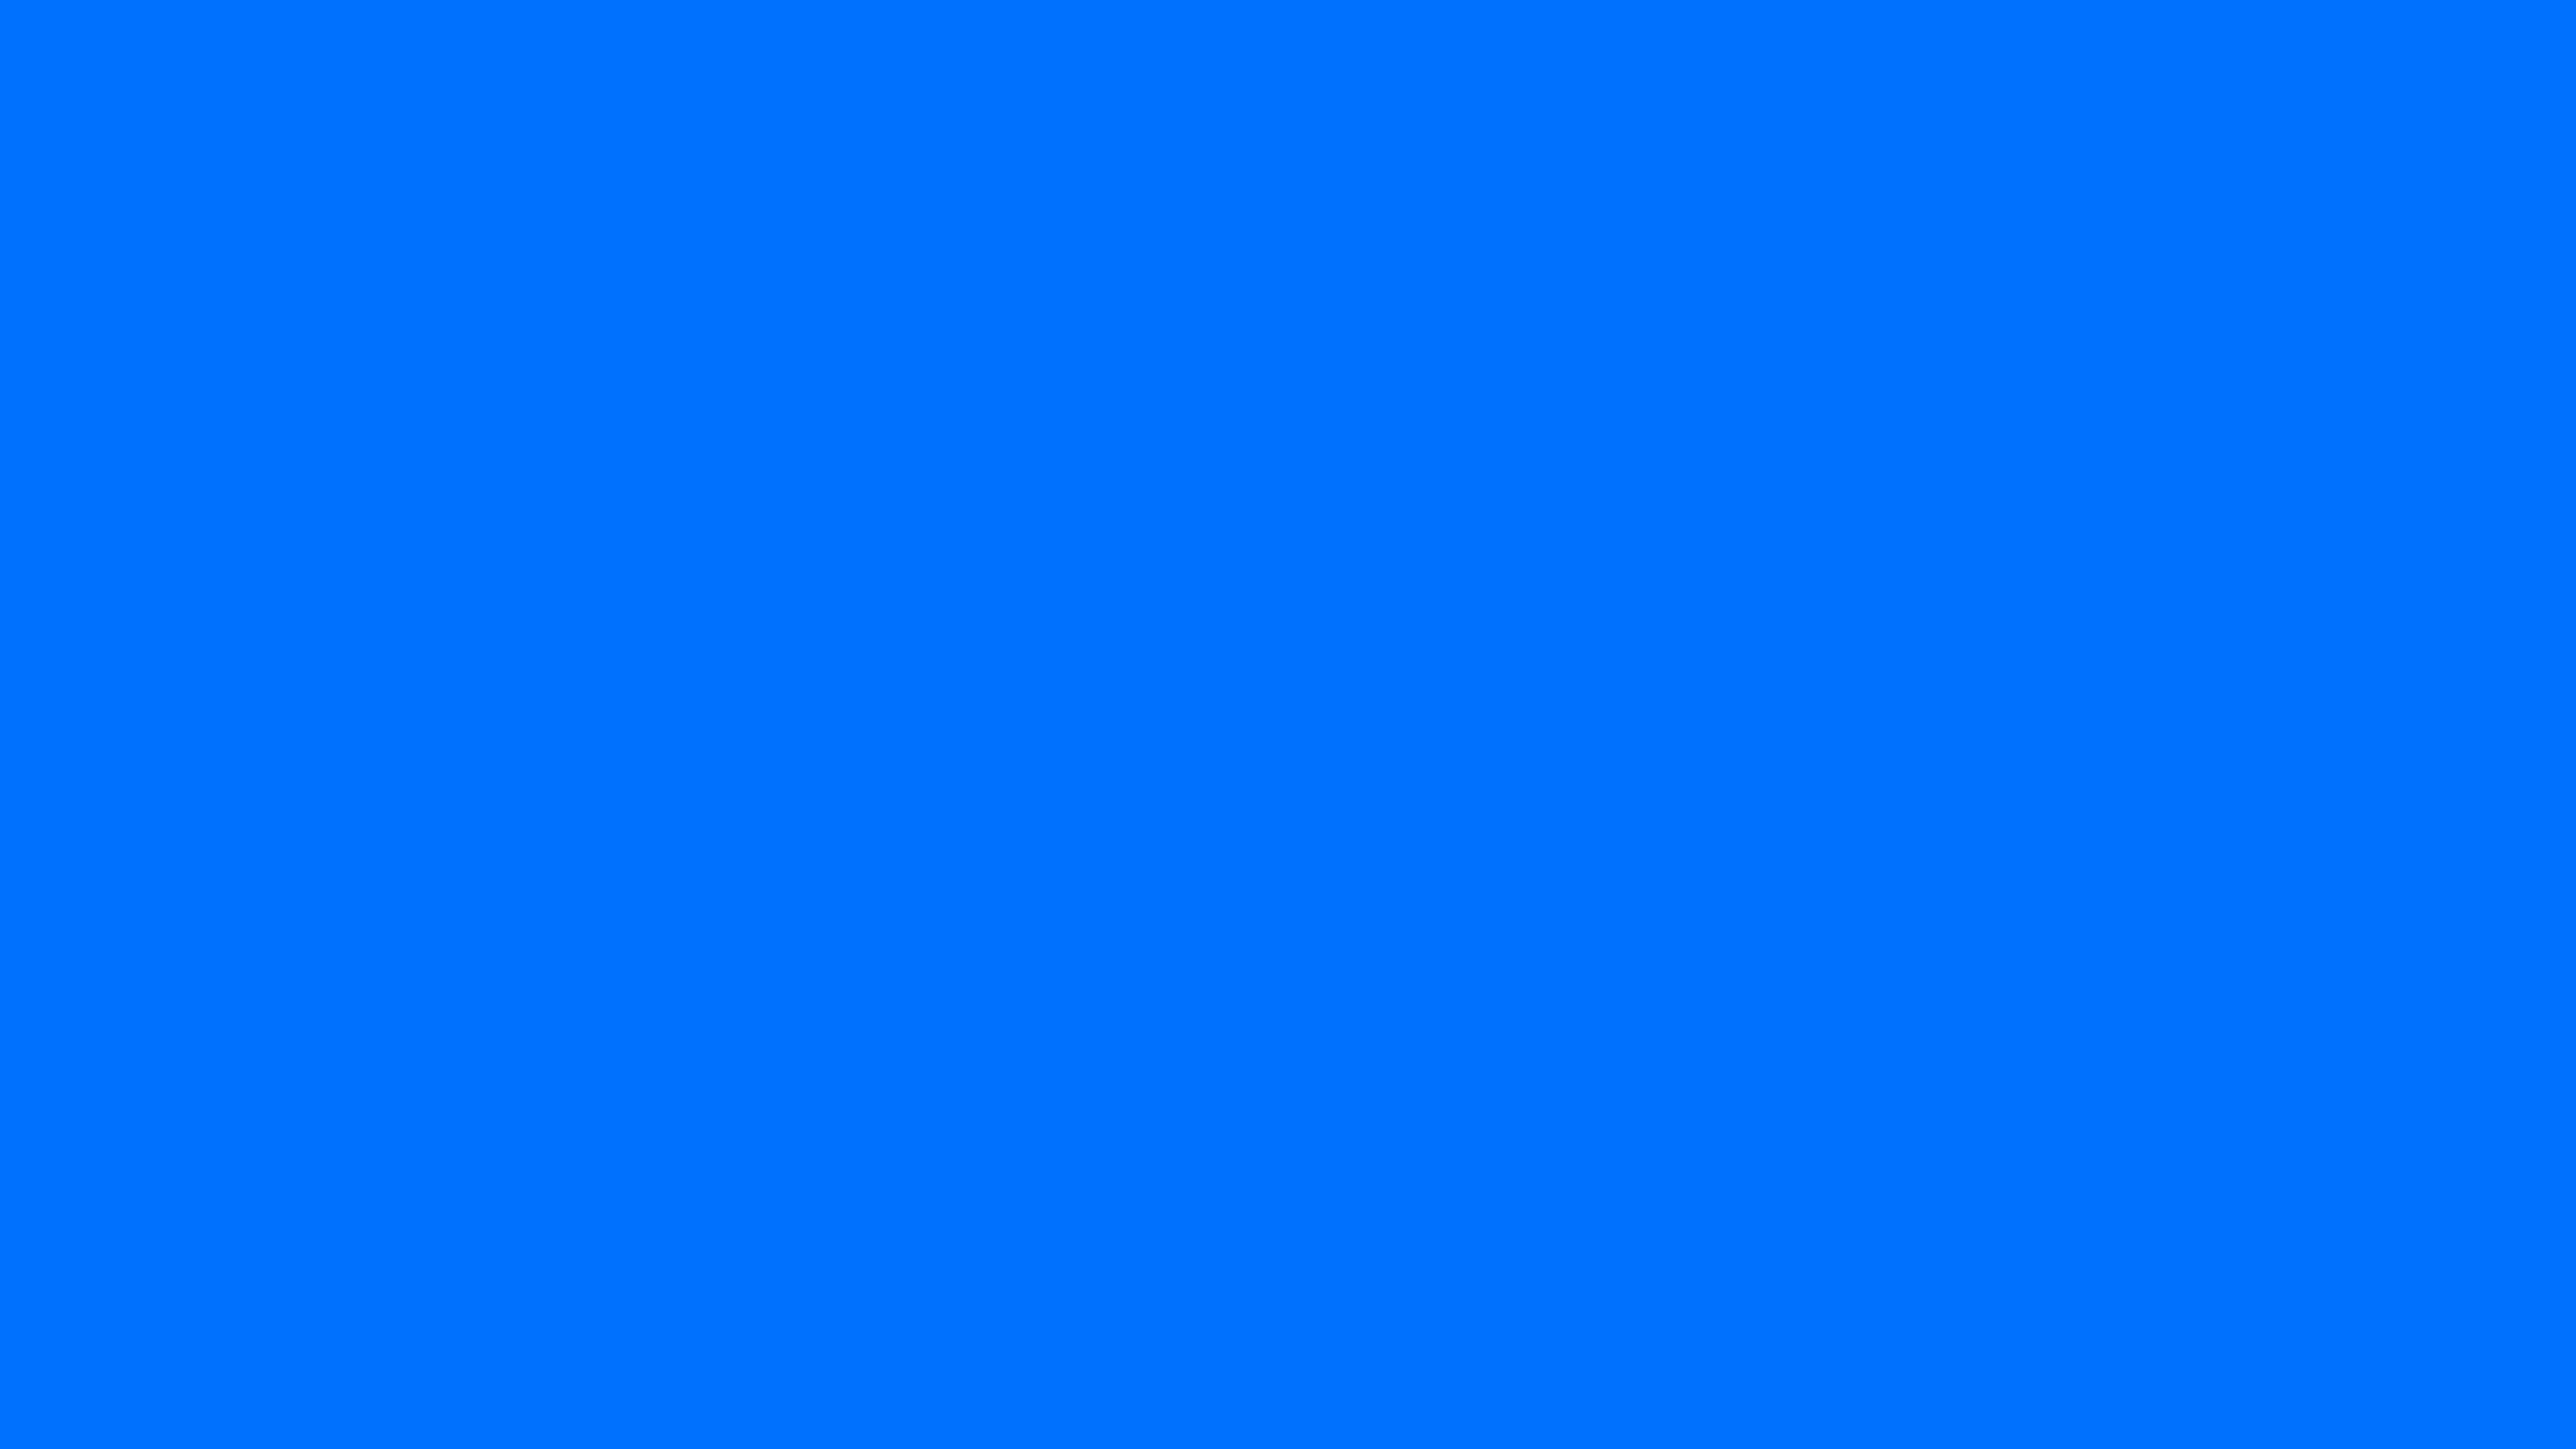 7680x4320 Brandeis Blue Solid Color Background